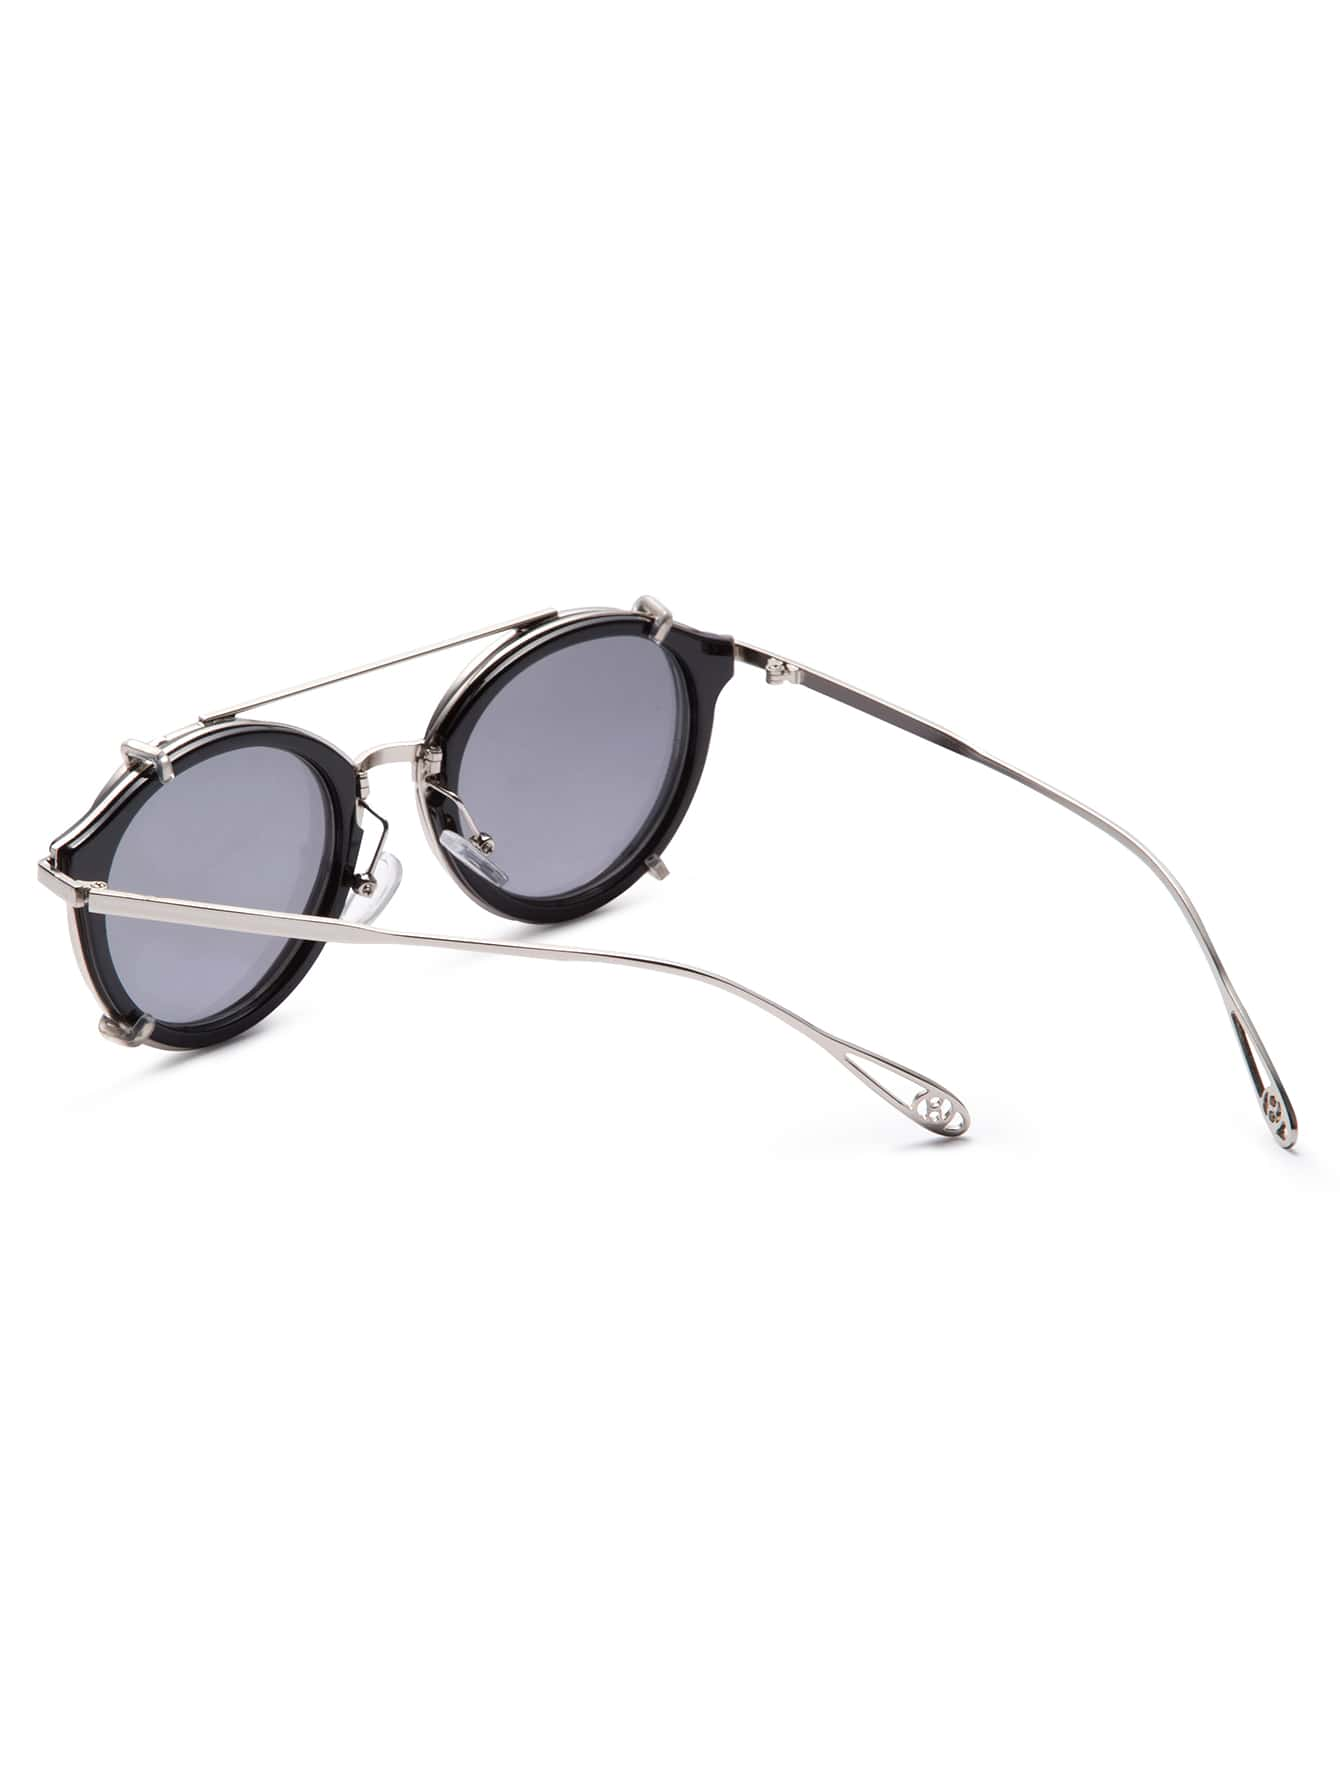 Black Metal Frame Glasses : Black Metal Frame Double Bridge Sunglasses -SheIn(Sheinside)